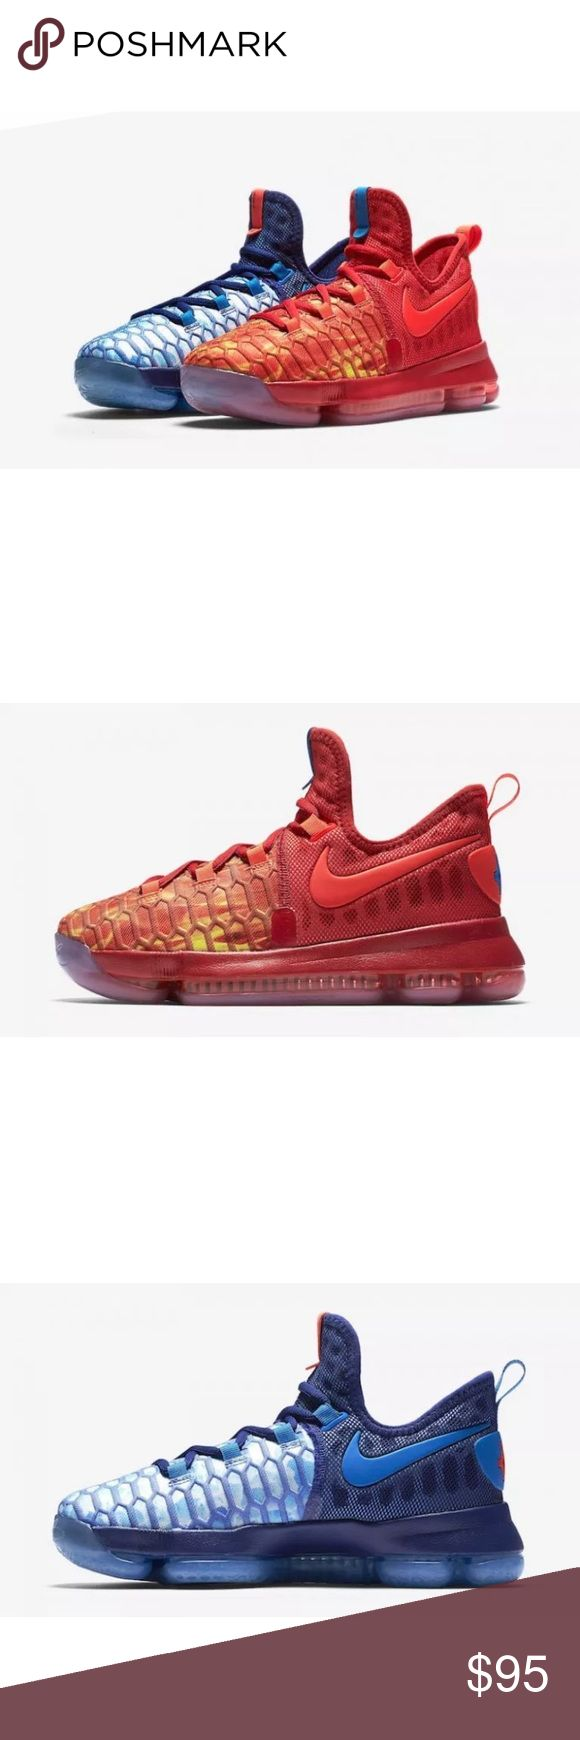 """Nike KD 9 Fire & Ice GS Size 7Y Brand : Nike  Style Code : 855908-400  Color: Deep Royal Blue/Photo Blue-University Red  Size : 7Y  Dubbed, """"Fire & Ice"""", this release is inspired by when Kevin Durant was a kid back in Maryland practicing in the winter. While playing outside, his hands would get ice cold. To warm them up, he'd try to pour hot water over them, which would give his hands a burning sensation.  BRAND NEW.  NO BOX.  NEVER WORN.  100% AUTHENTIC Nike Shoes Athletic Shoes"""